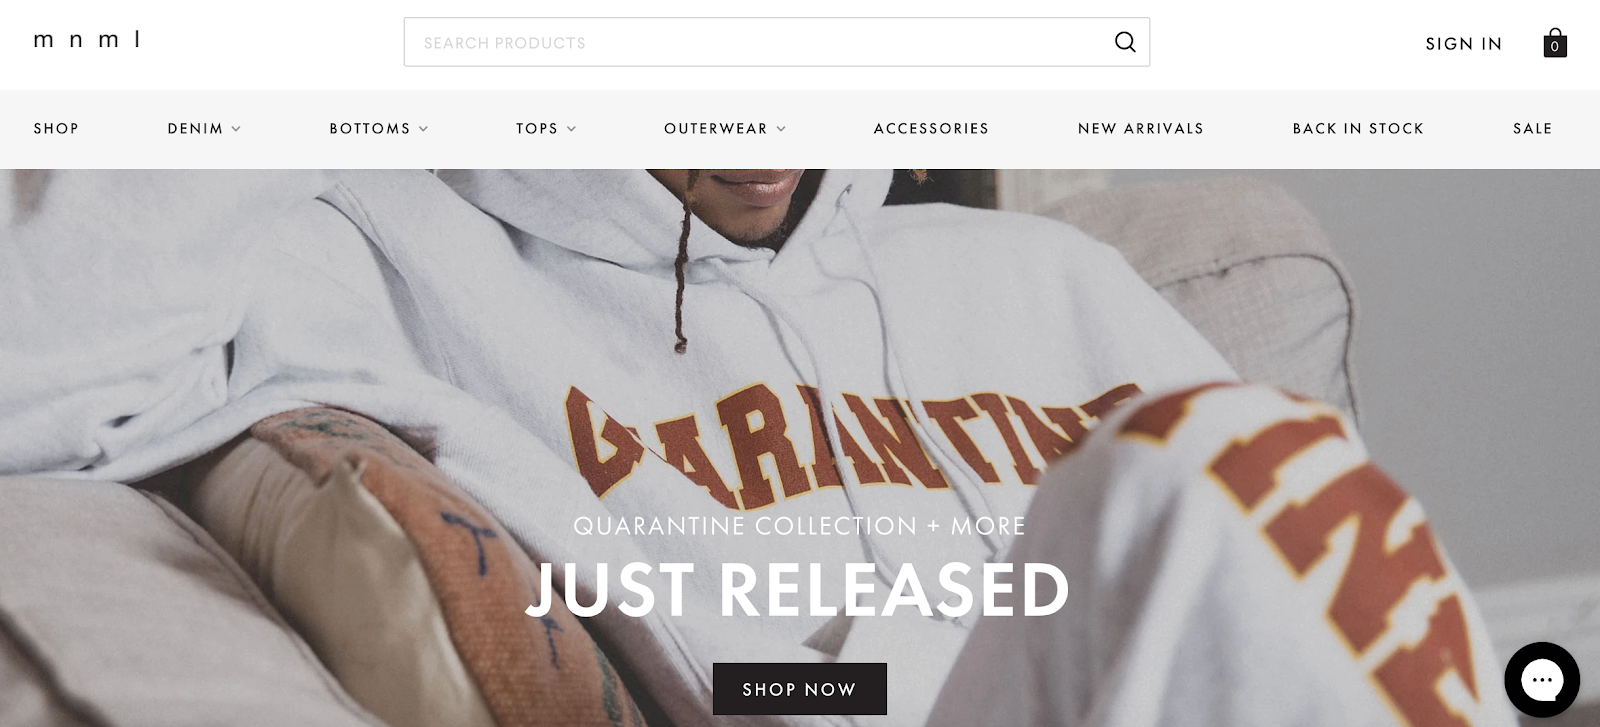 mnml homepage with man in sweatshirt in the background